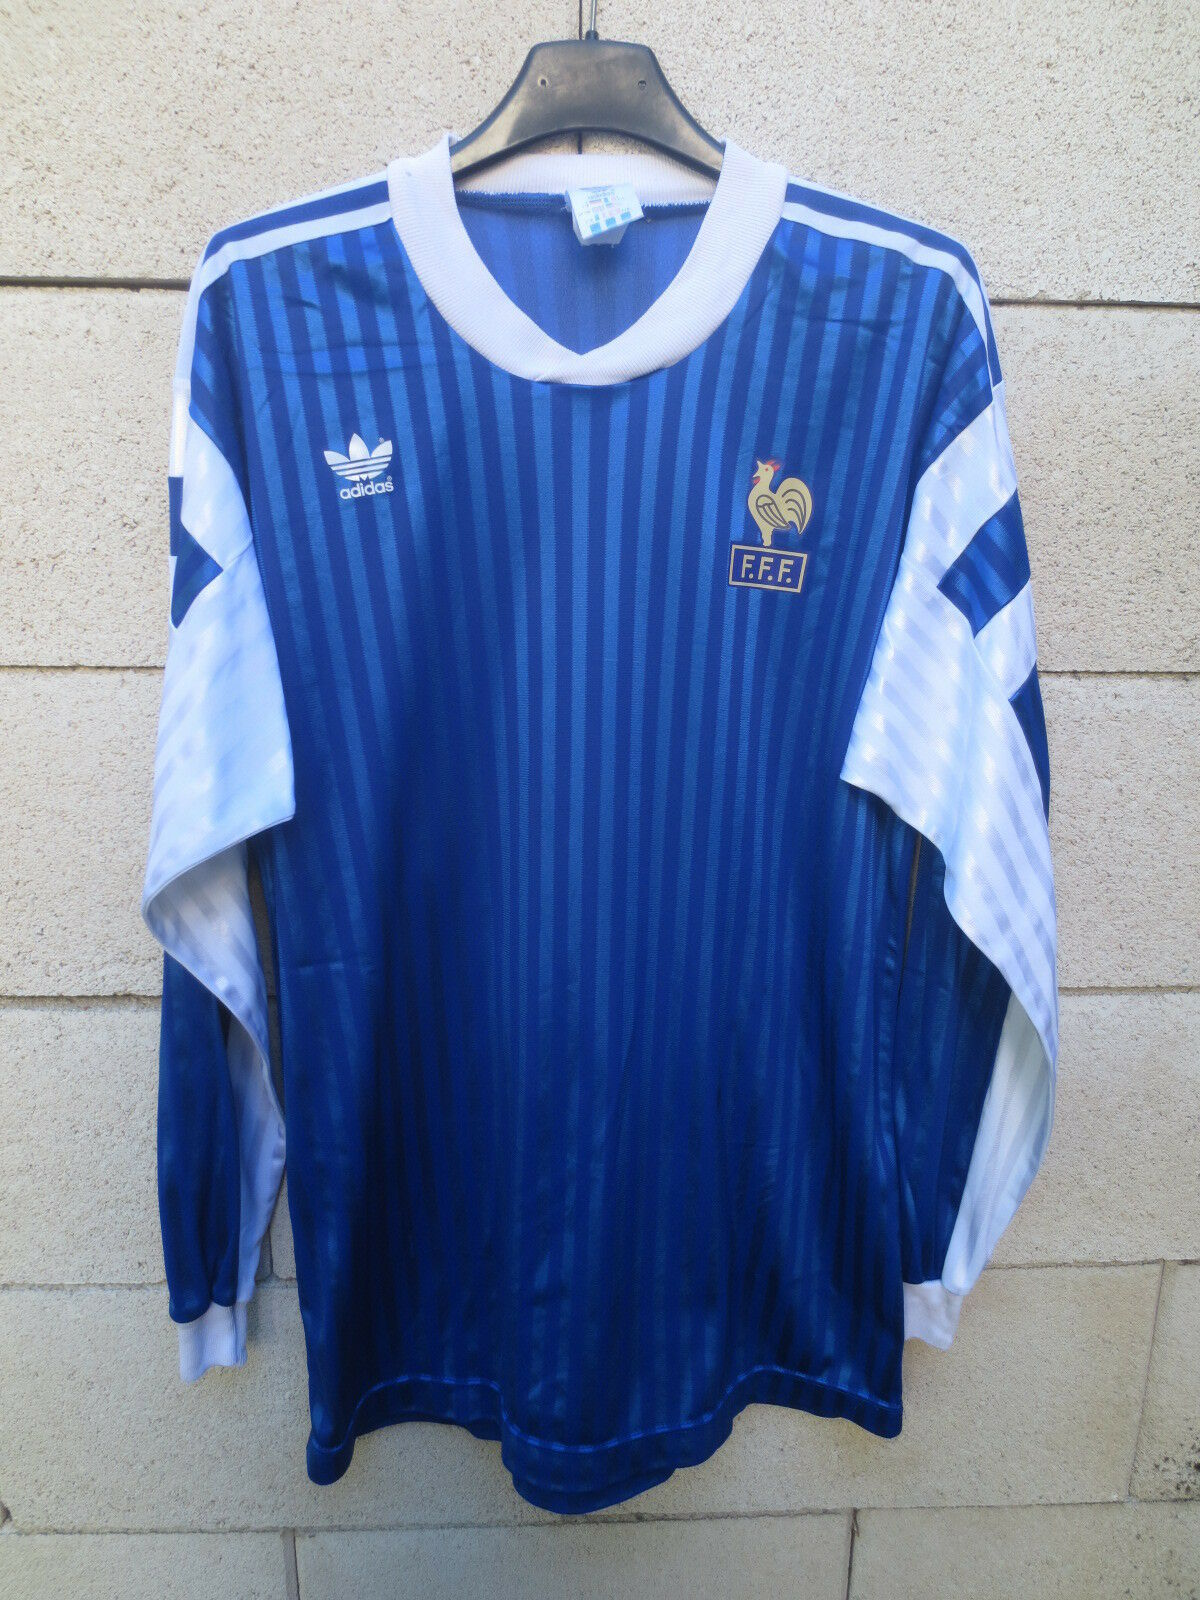 Maillot entrainement n°3 Equipe FRANCE vintage ADIDAS longues shirt 1992 manches longues ADIDAS 5126a2